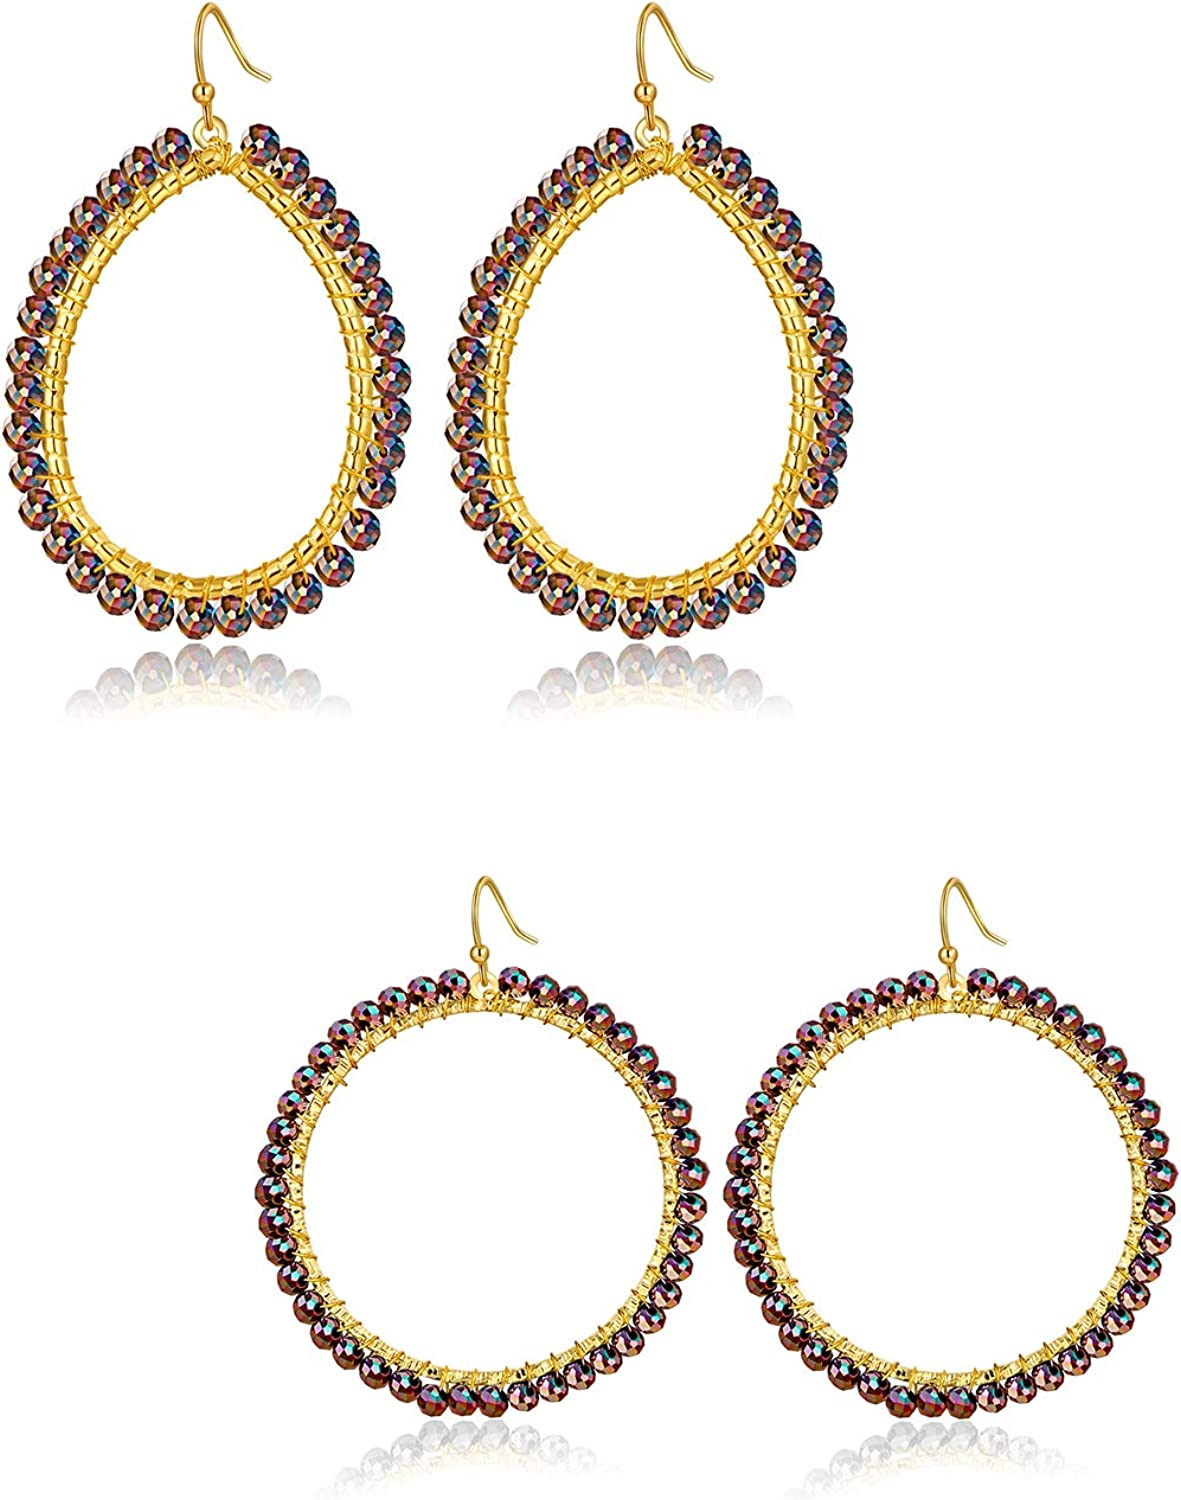 Handmade Crystal Beaded Statement Hoop Drop Earrings for Women Girls-2 pairs 14K Gold Plated Lightweight Bohemian Colorful Wrapped Beads Dangle Earring